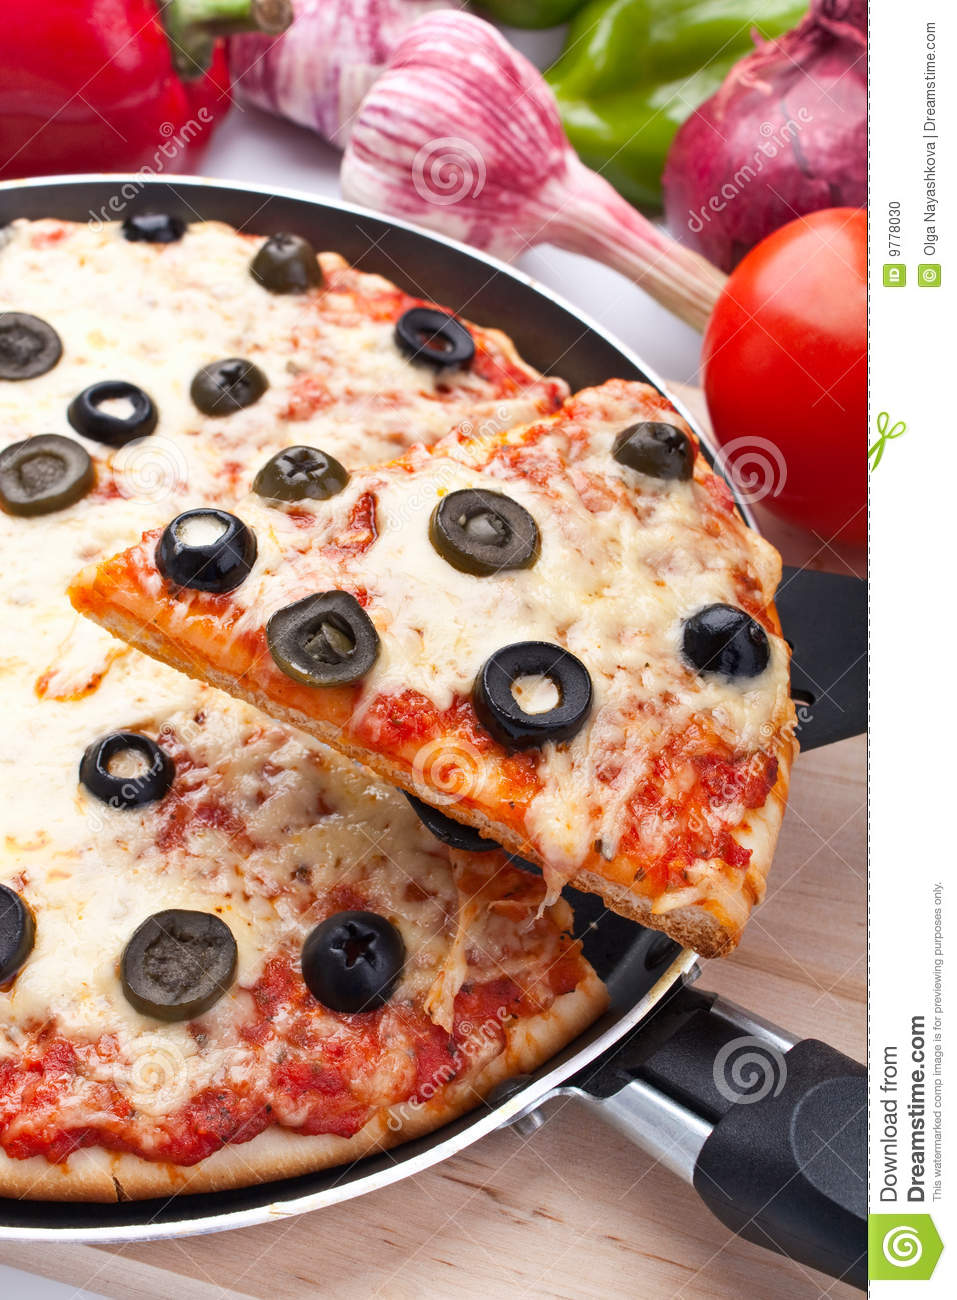 cheese and olive pizza stock photo image 9778030. Black Bedroom Furniture Sets. Home Design Ideas